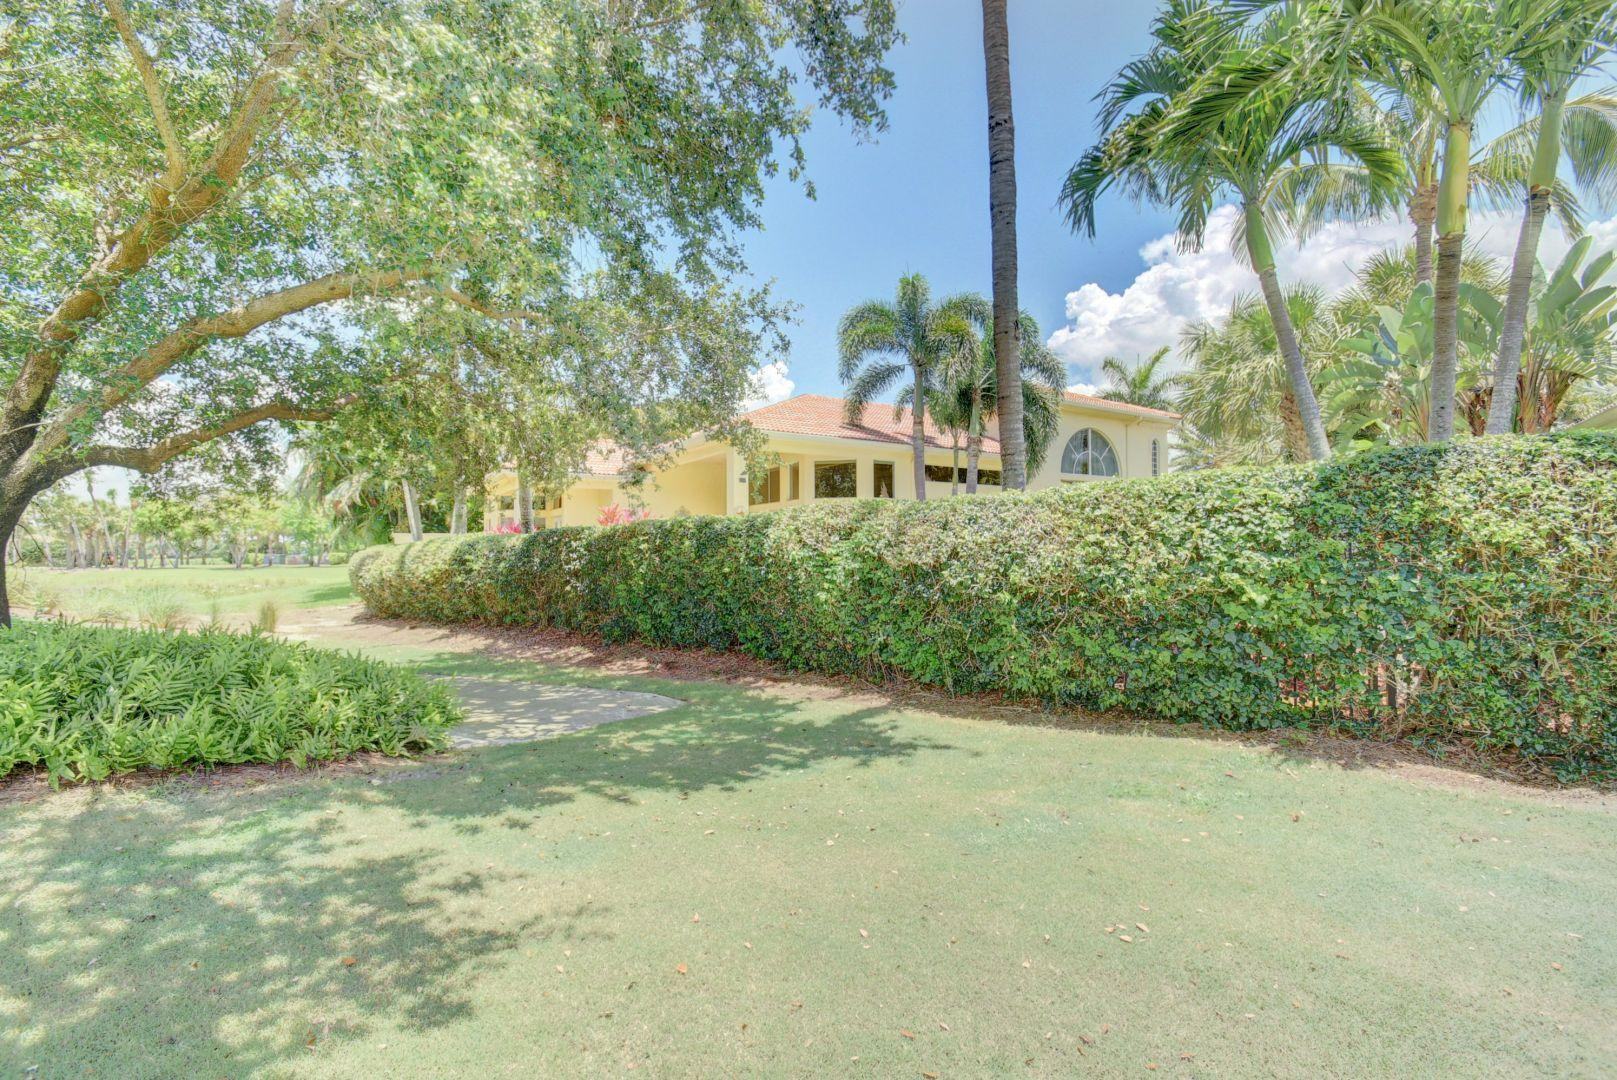 16318 Braeburn Ridge Trail, Delray Beach, Florida 33446, 4 Bedrooms Bedrooms, ,4.1 BathroomsBathrooms,Single Family,For Sale,Mizner Country Club,Braeburn Ridge,RX-10444496